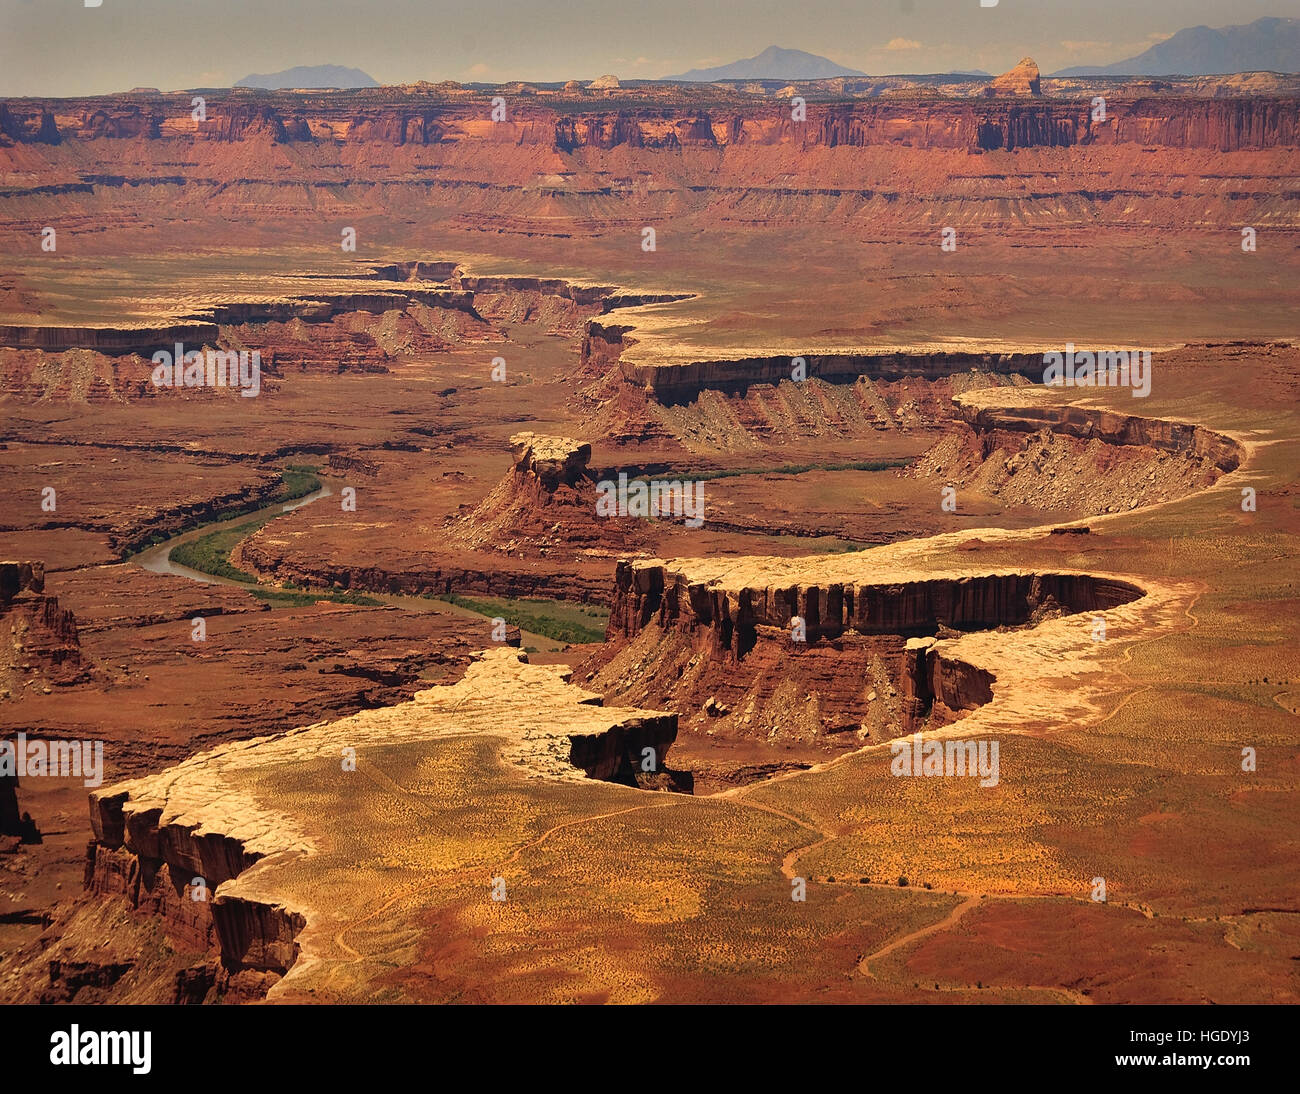 Canyonland National Park overlooking the Green River winding through the cataracts of The flatland within the National - Stock Image